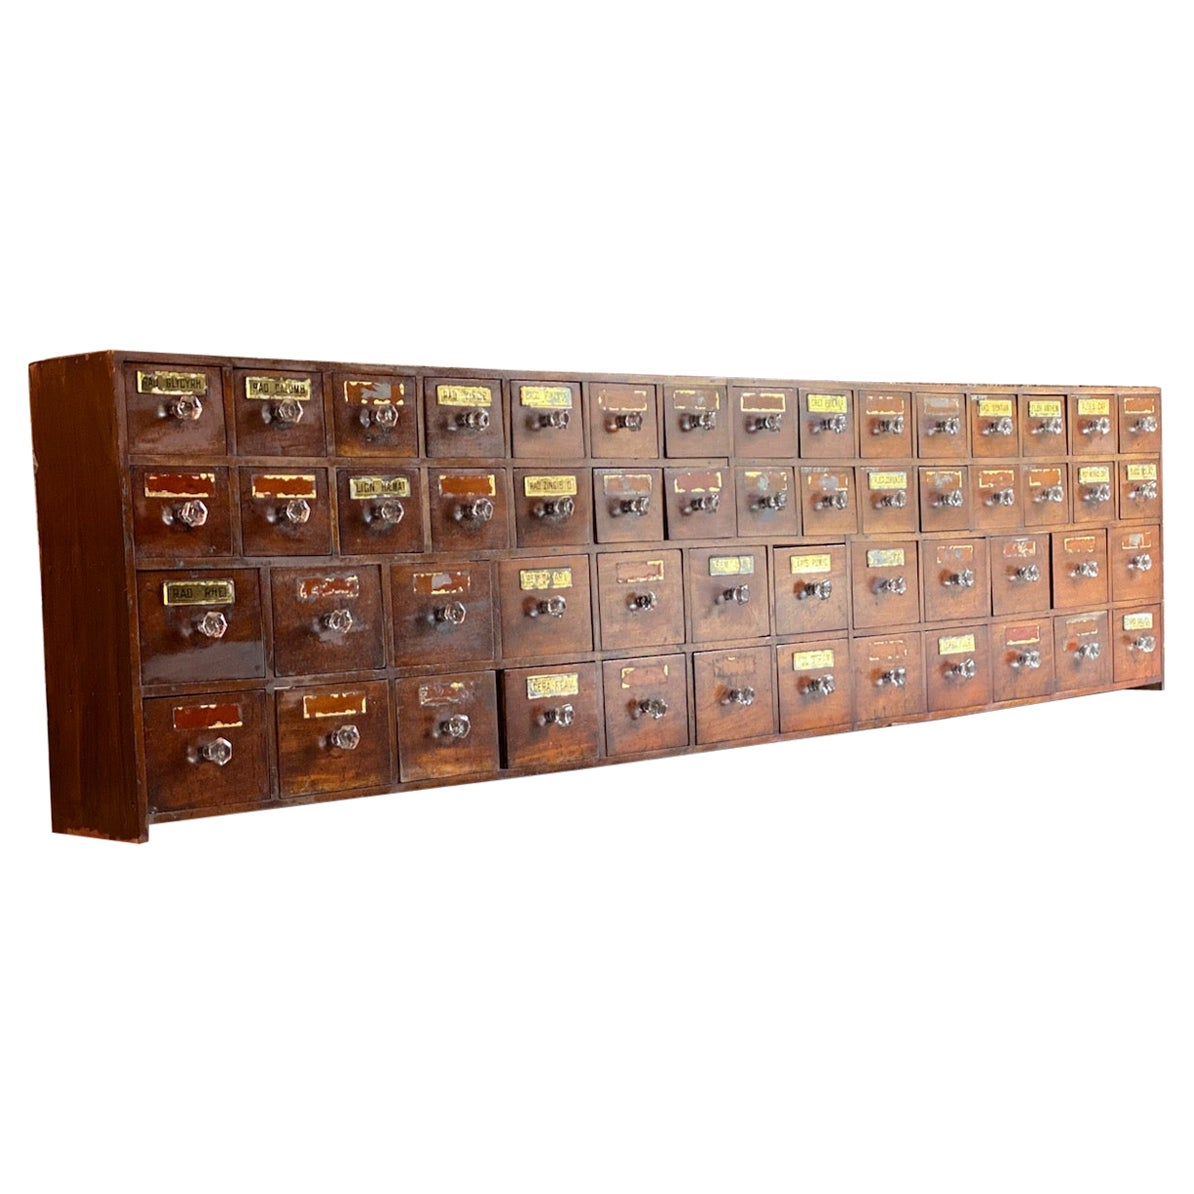 Antique Apothecary Chest of Drawers Chemist Pharmacy Victorian circa 1870